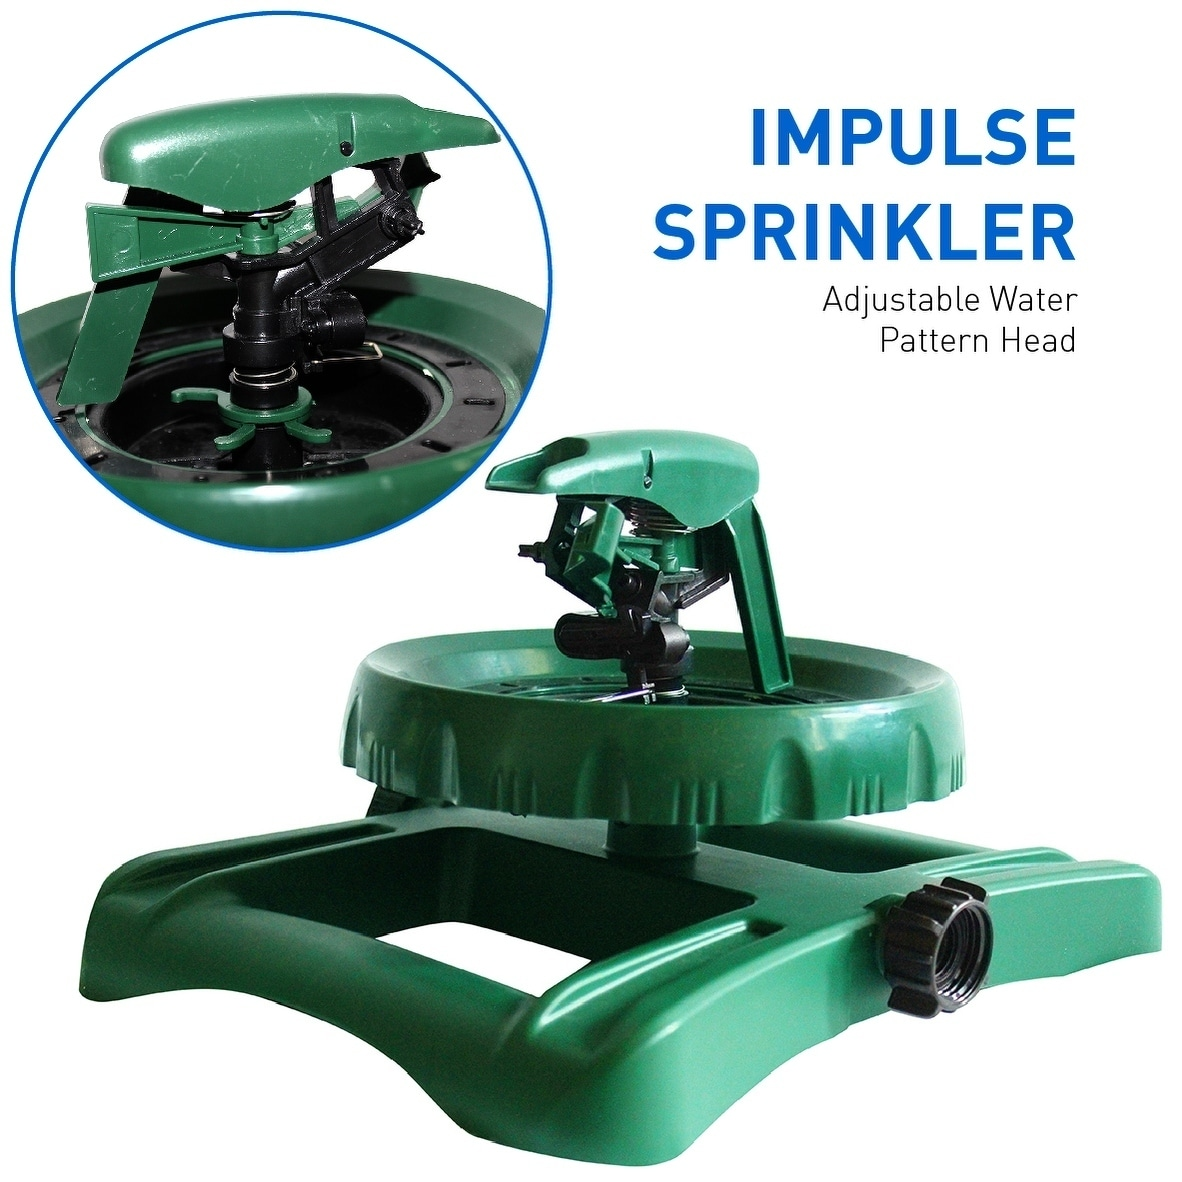 EasyGo Impulse Sprinkler with Adjustable Water Pattern He...